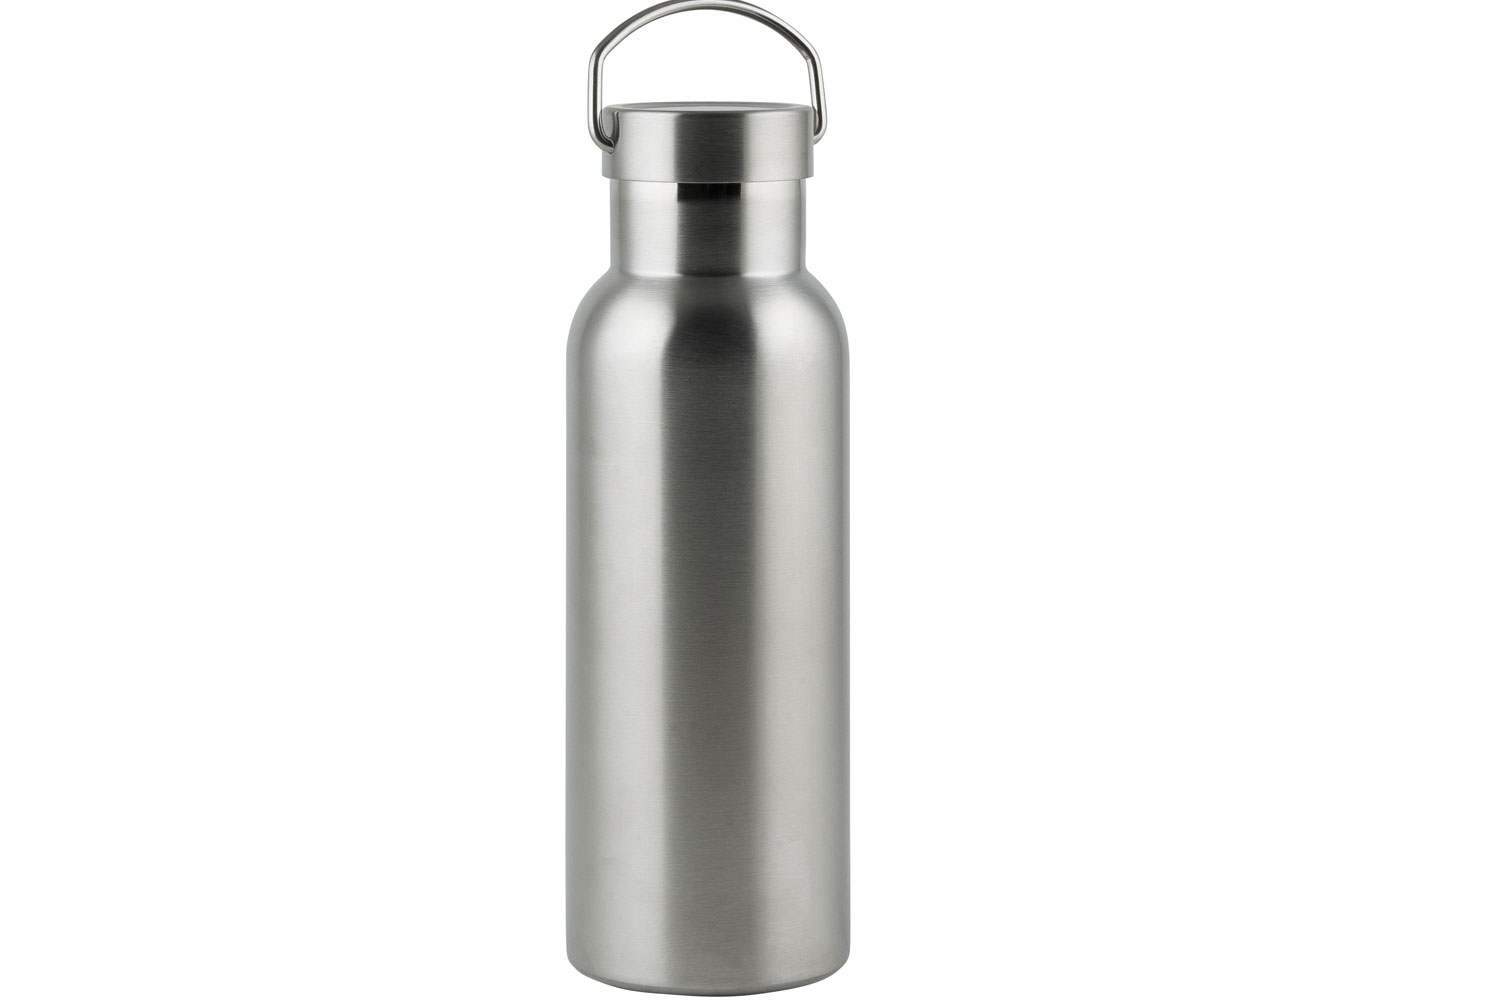 Stainless Steel Thermos Flask - No longer current